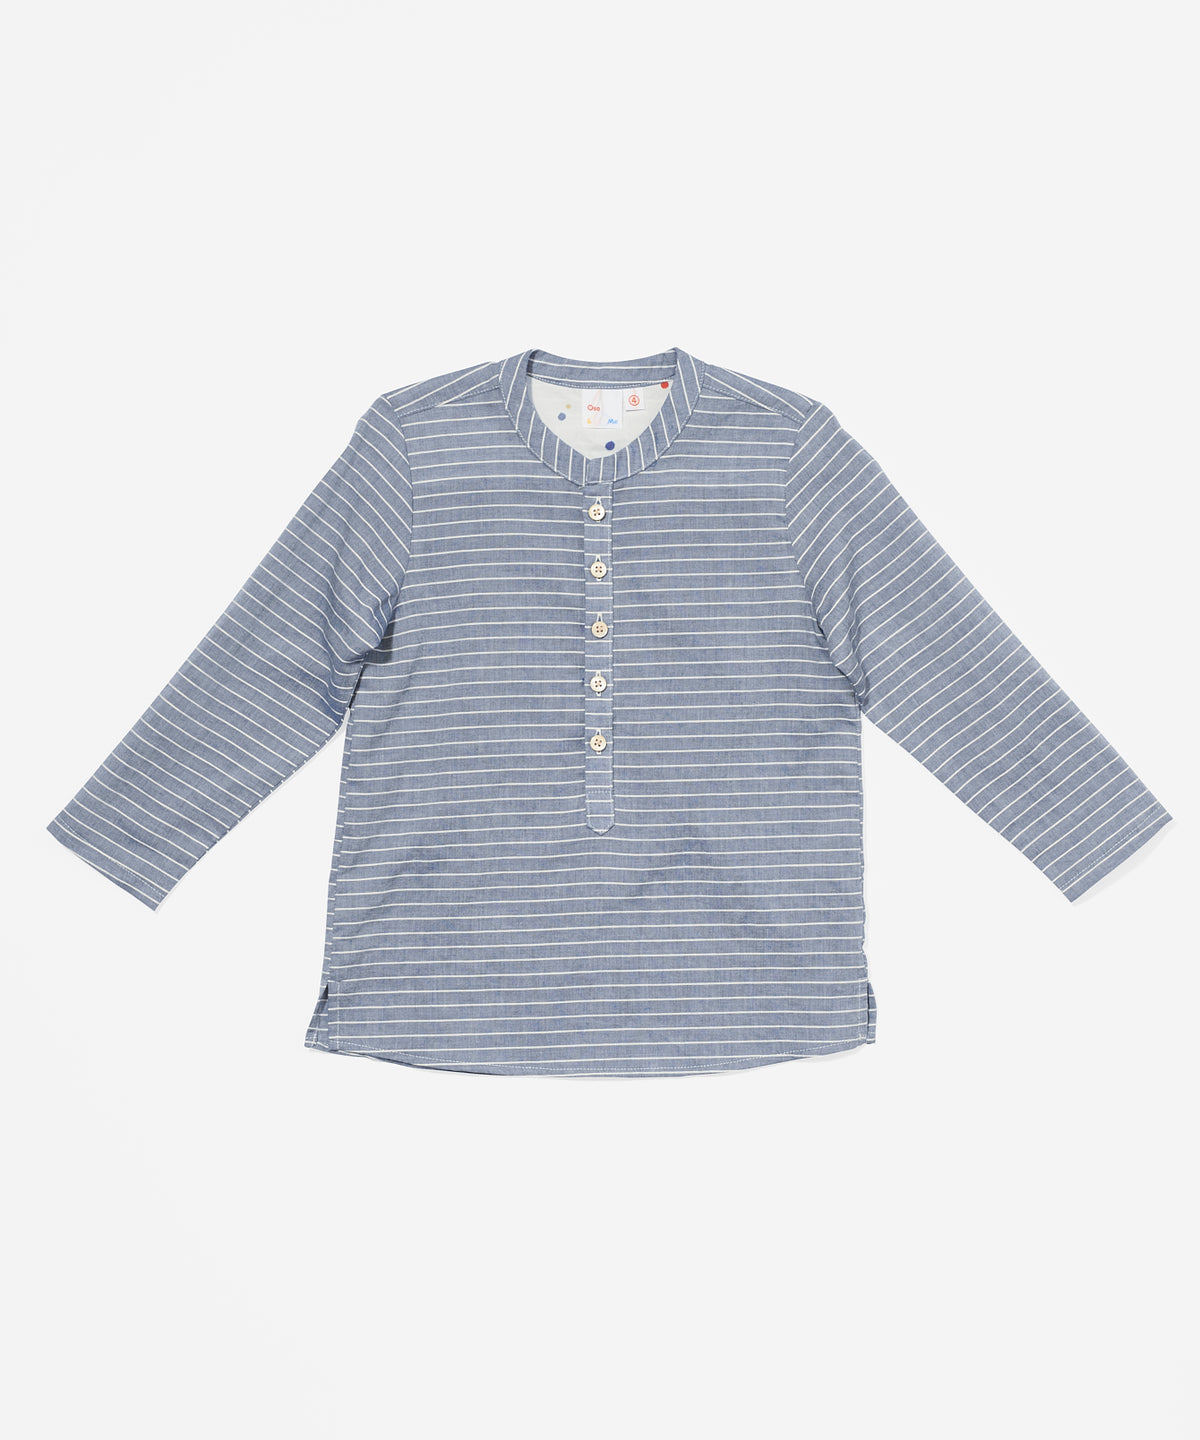 Lupo Shirt, Chambray Stripe